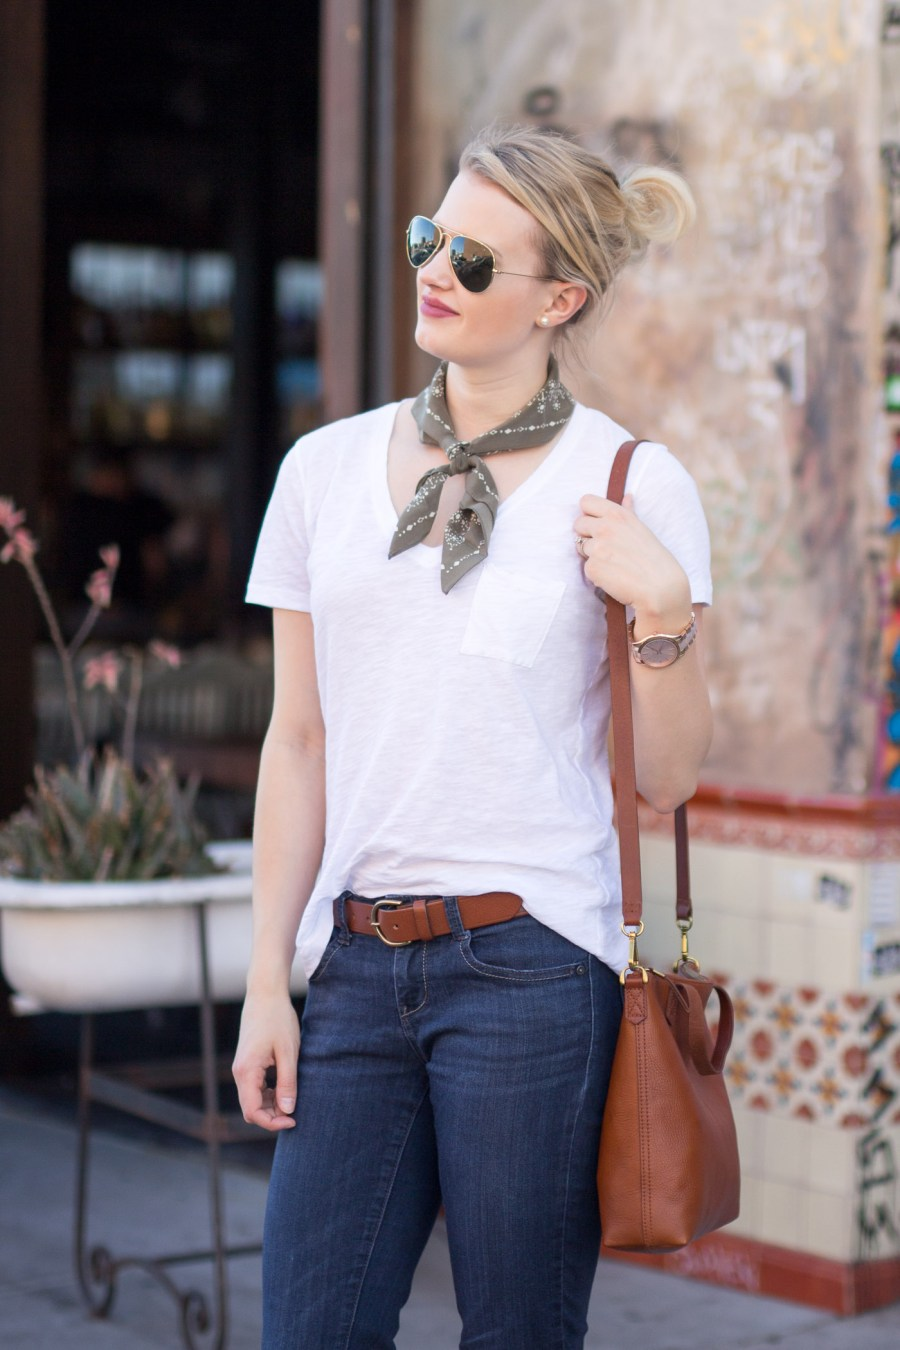 The Perfect Accessories for a White T-shirt, fashion blog, Treats and Trends, outfit idea, Madewell